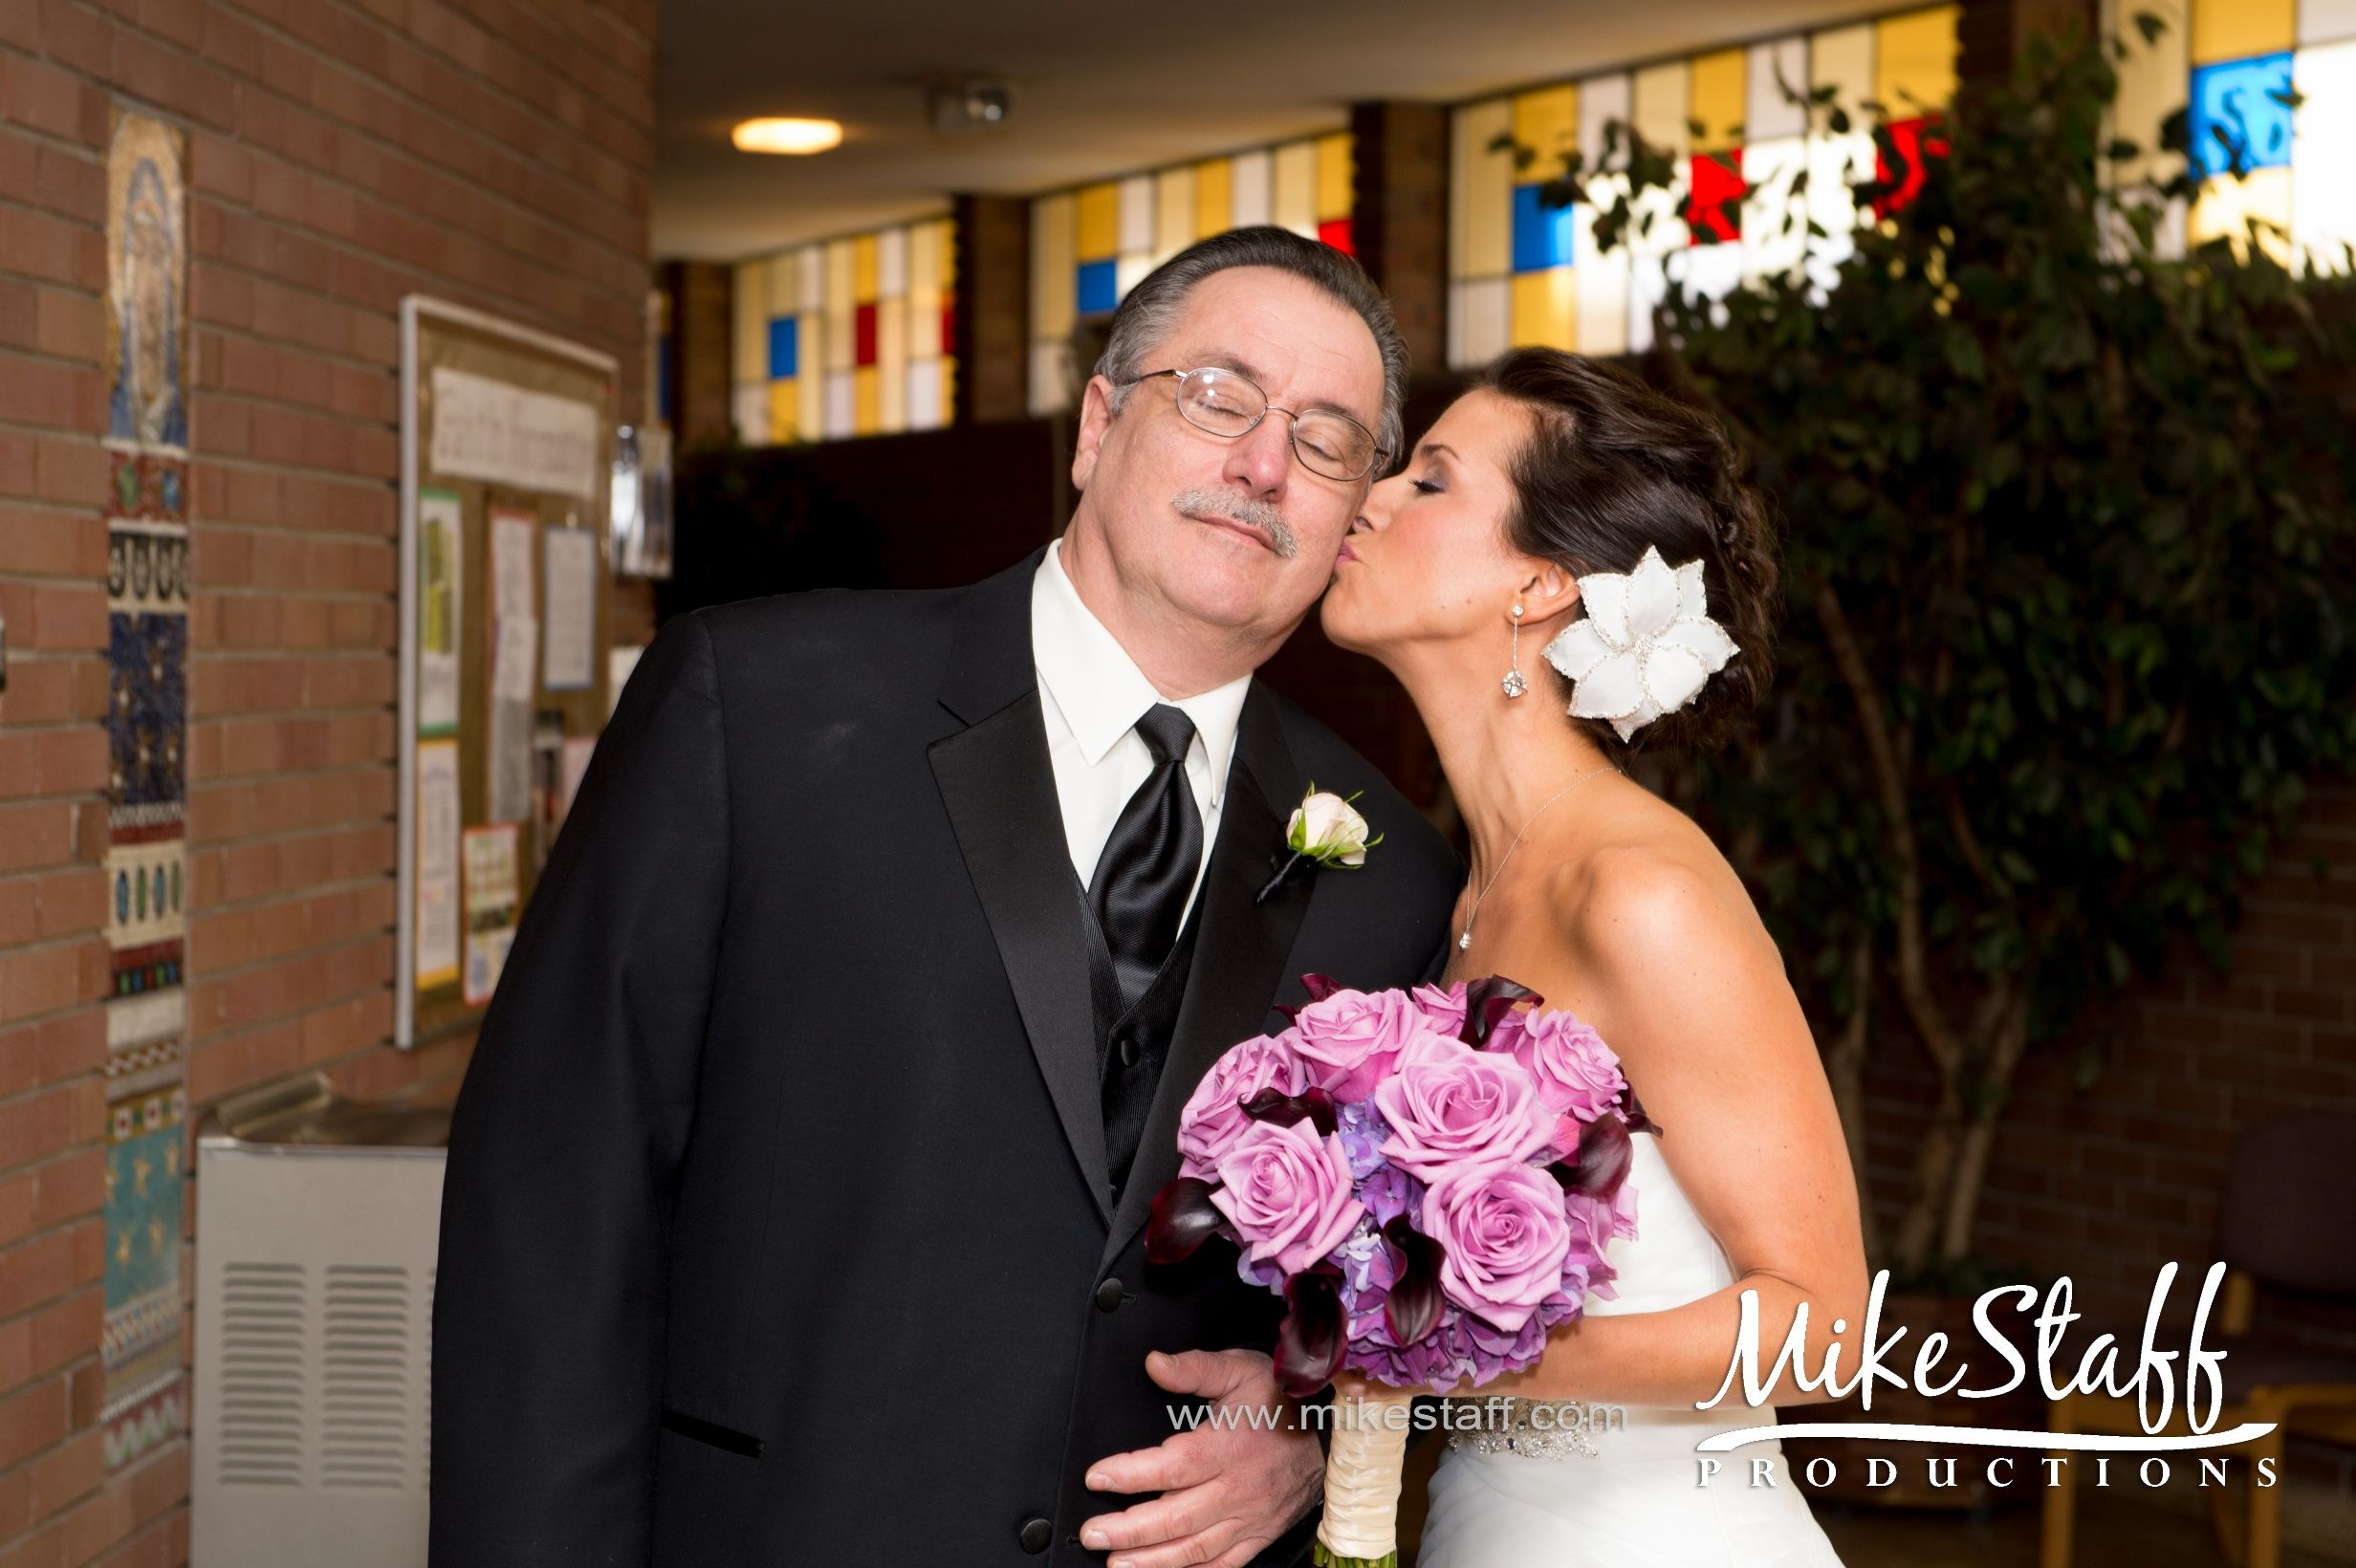 Fun And Creative Michigan Wedding Photographers With Realistic Prices